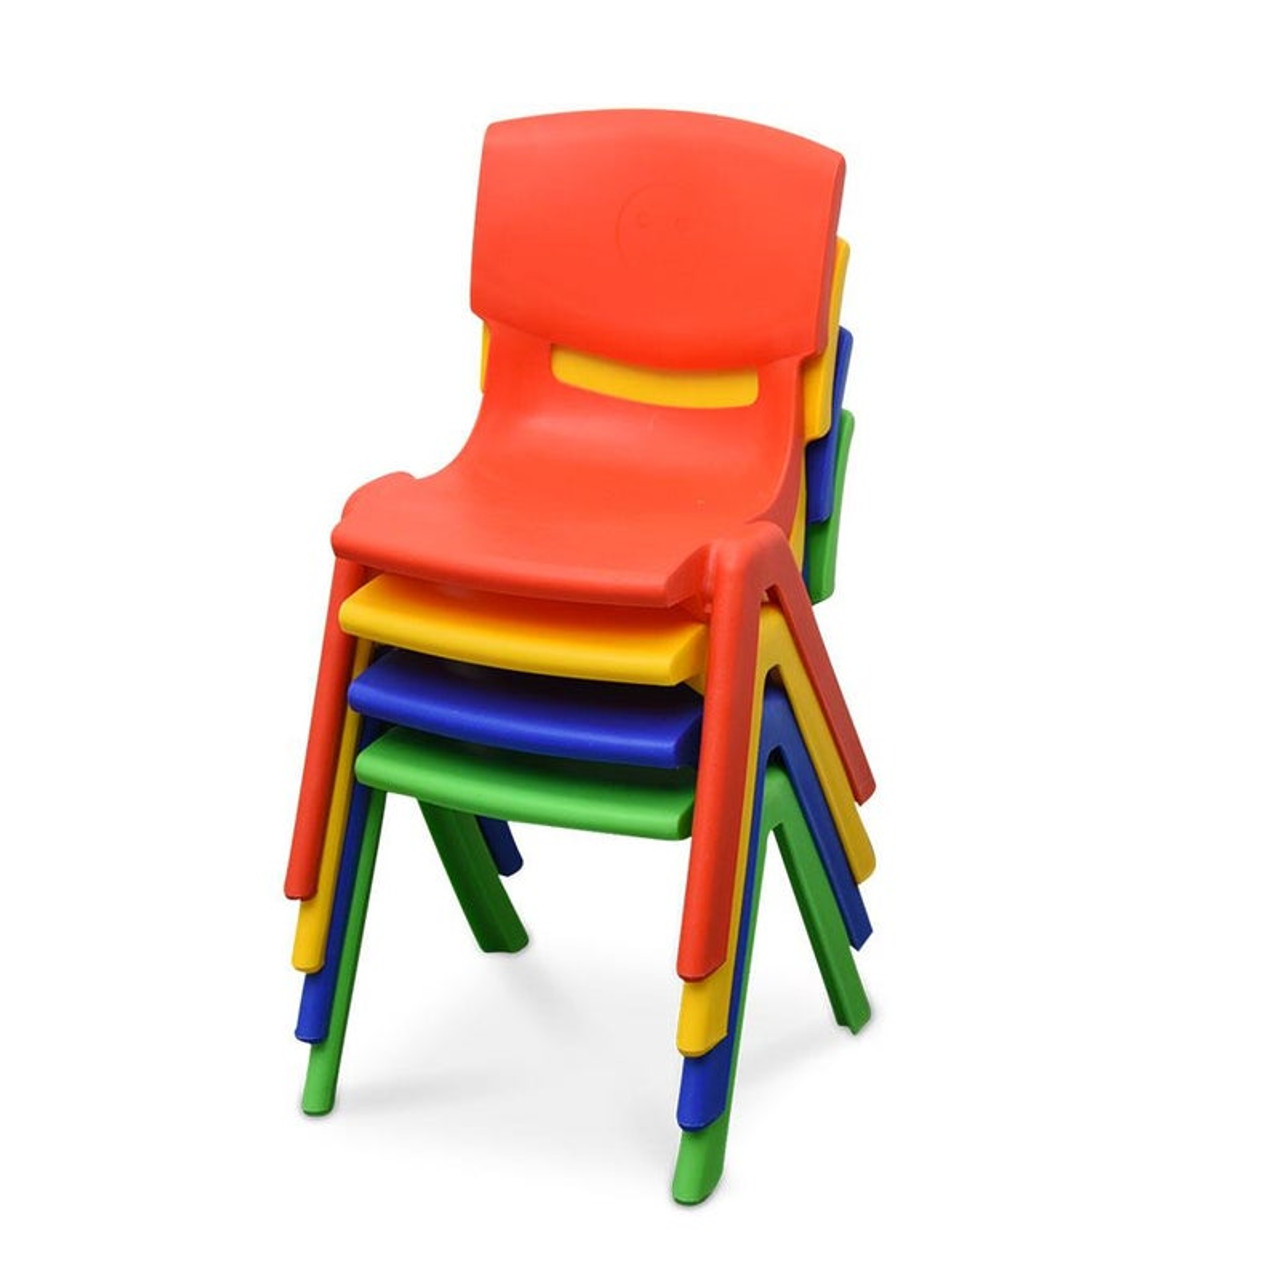 Classic Toddler Play Chair at Baby Barn Discounts A sturdy, safe & brightly coloured chair, perfect for all little kids. Designed to last through the toughest every day use.